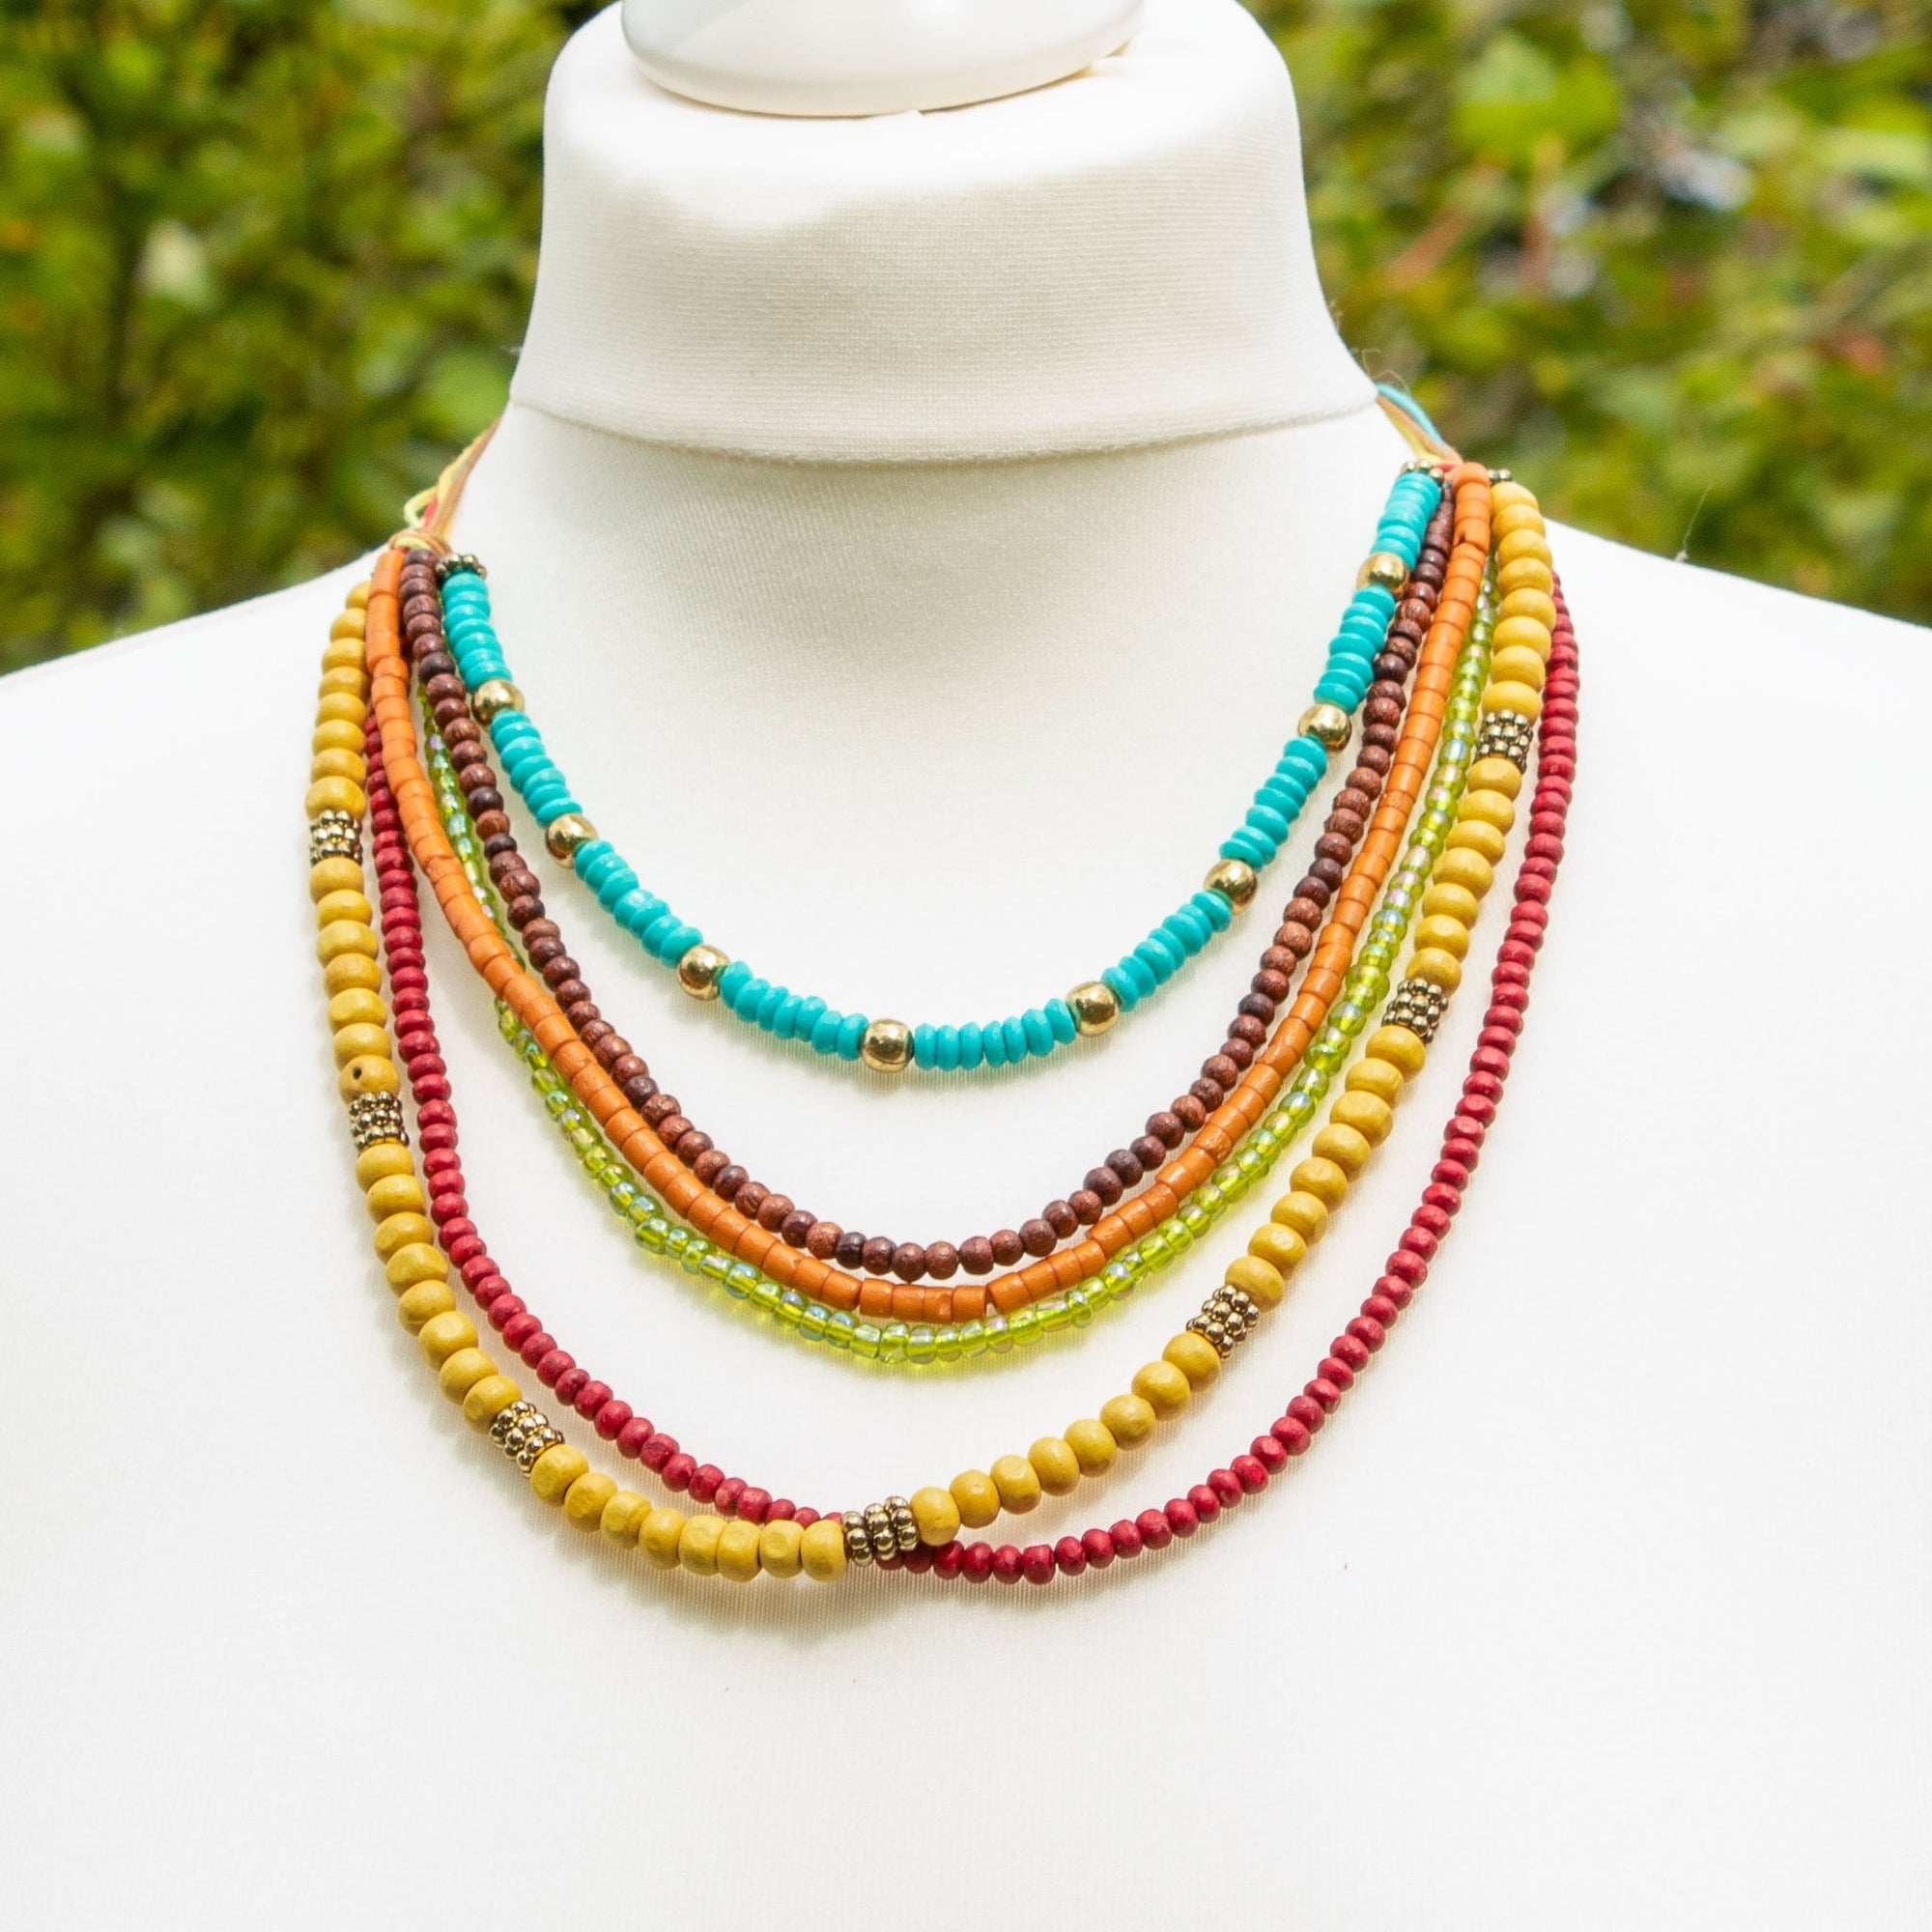 Colourful Multi Strand Necklace | Necklace - The Naughty Shrew